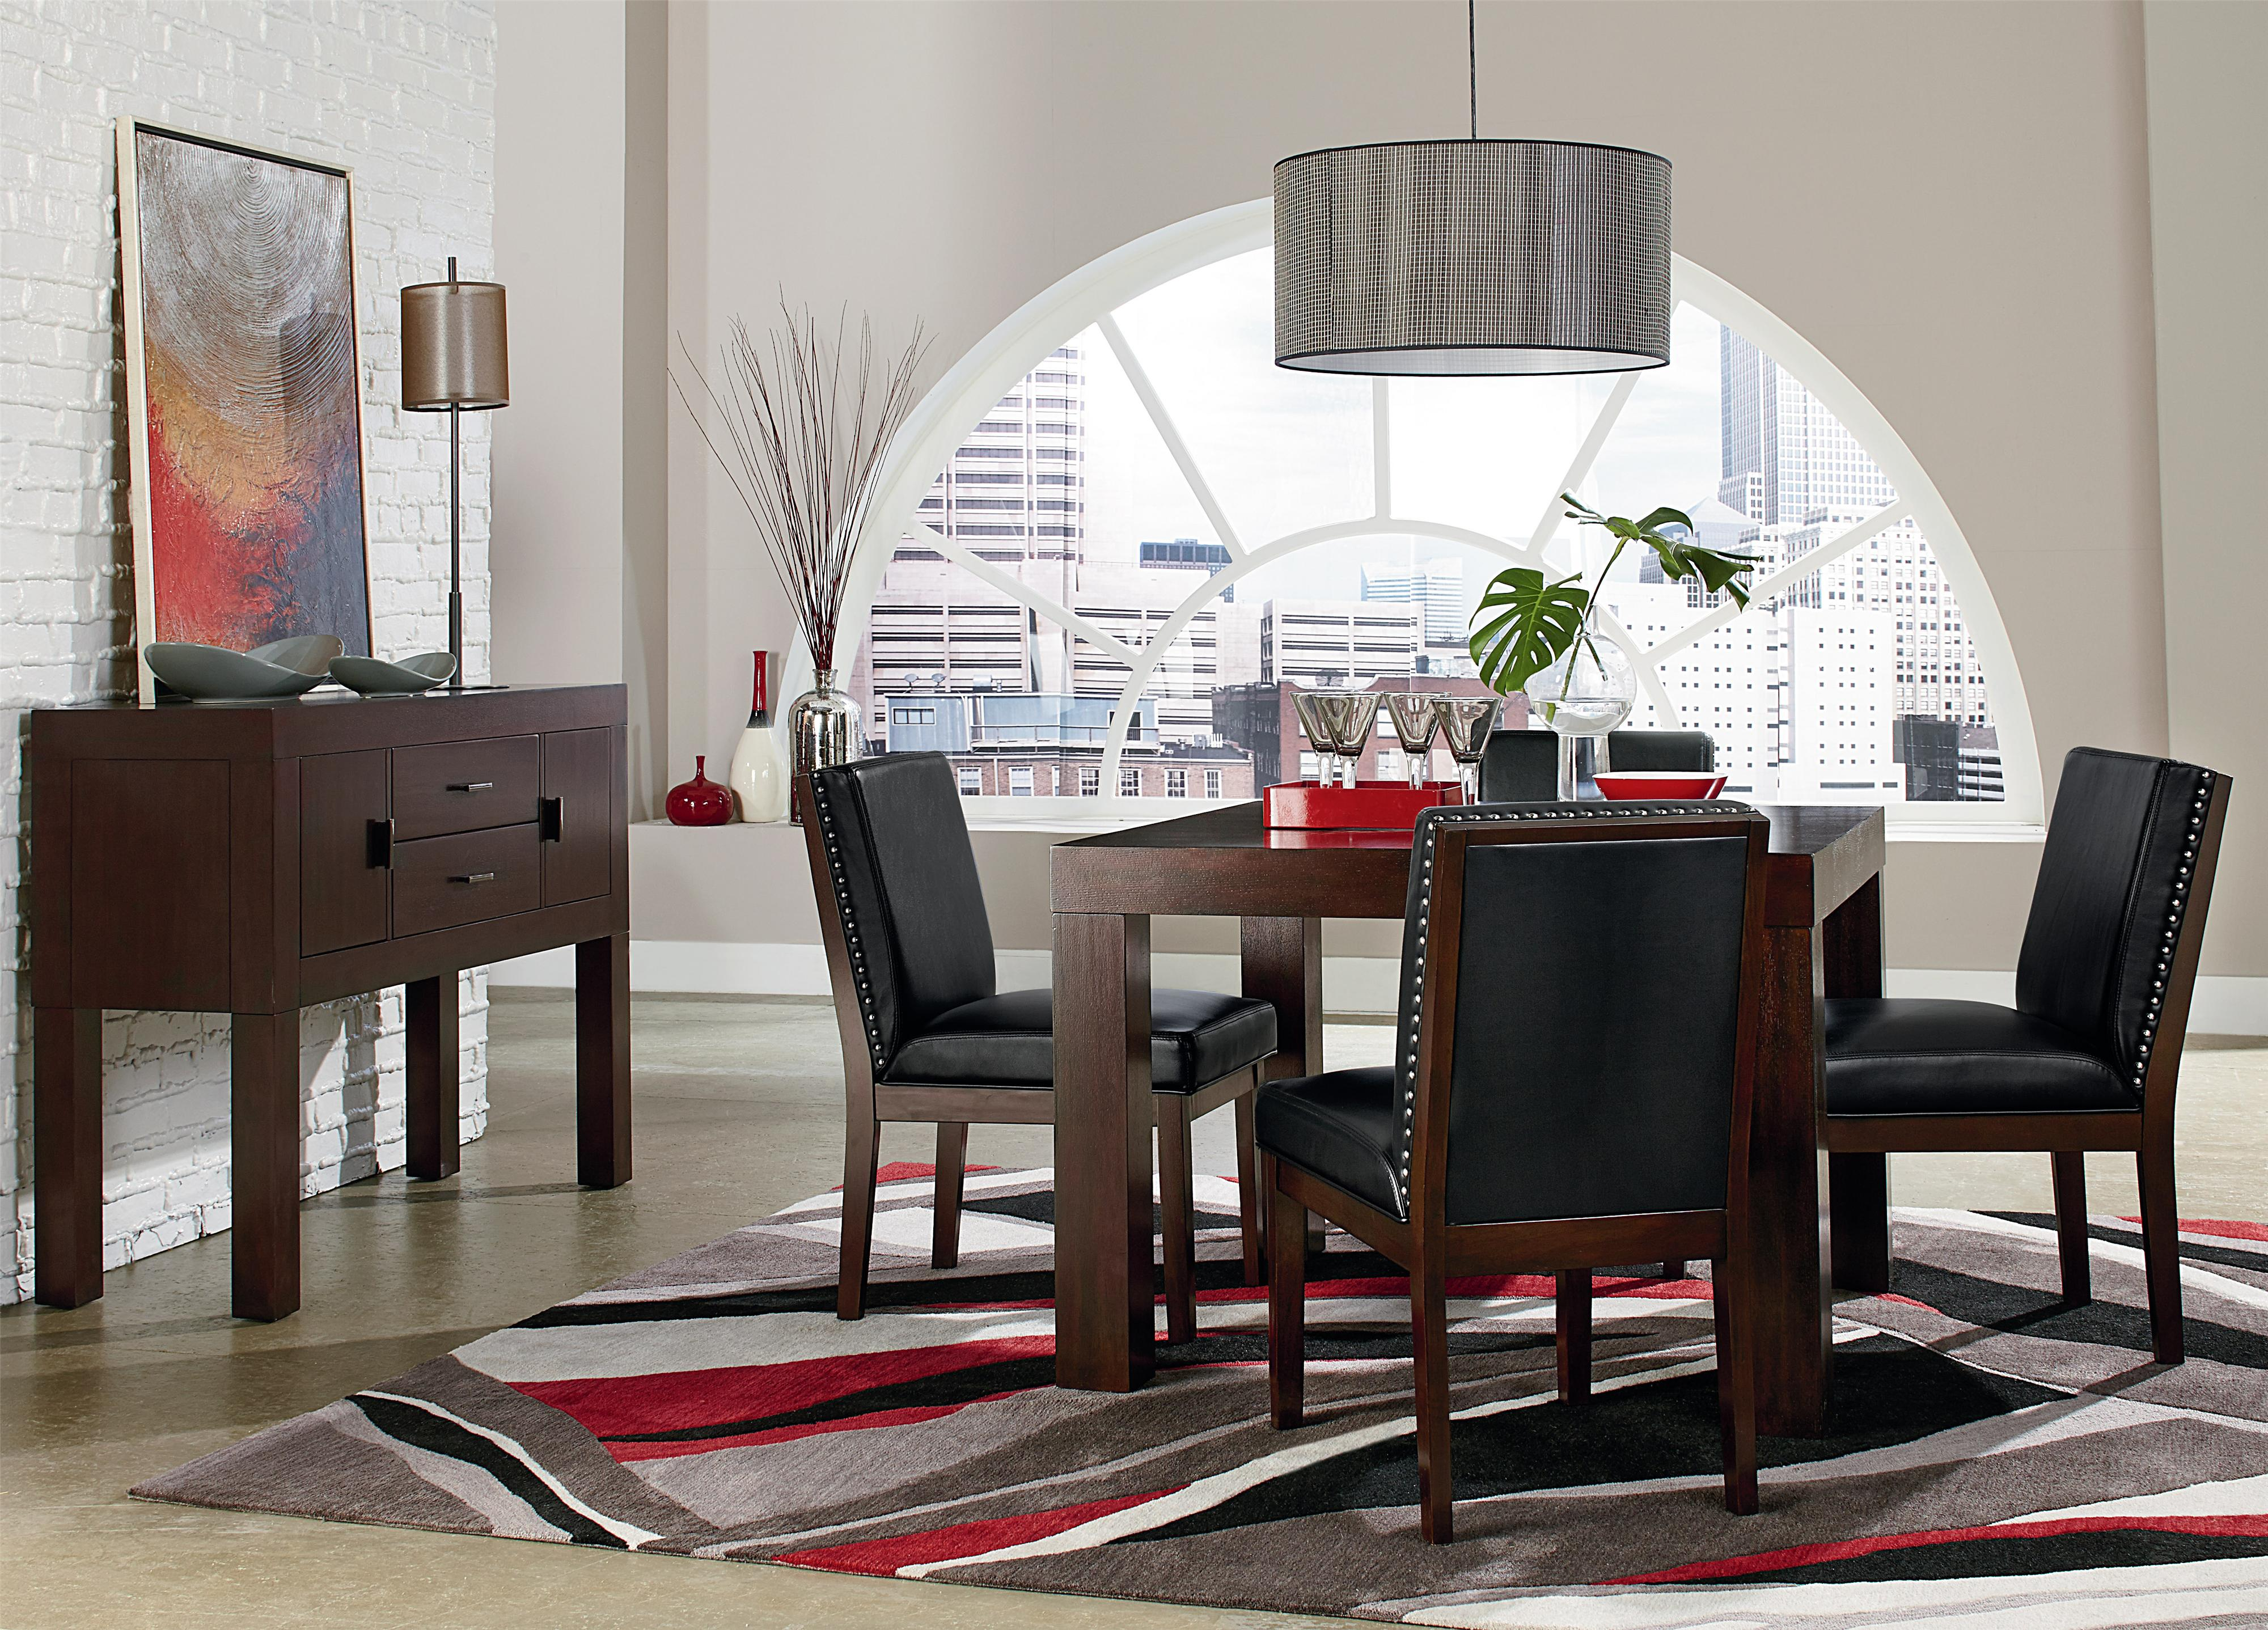 Standard Furniture Couture Elegance Dining Room Group - Item Number: 10560 Dining Room Group 6